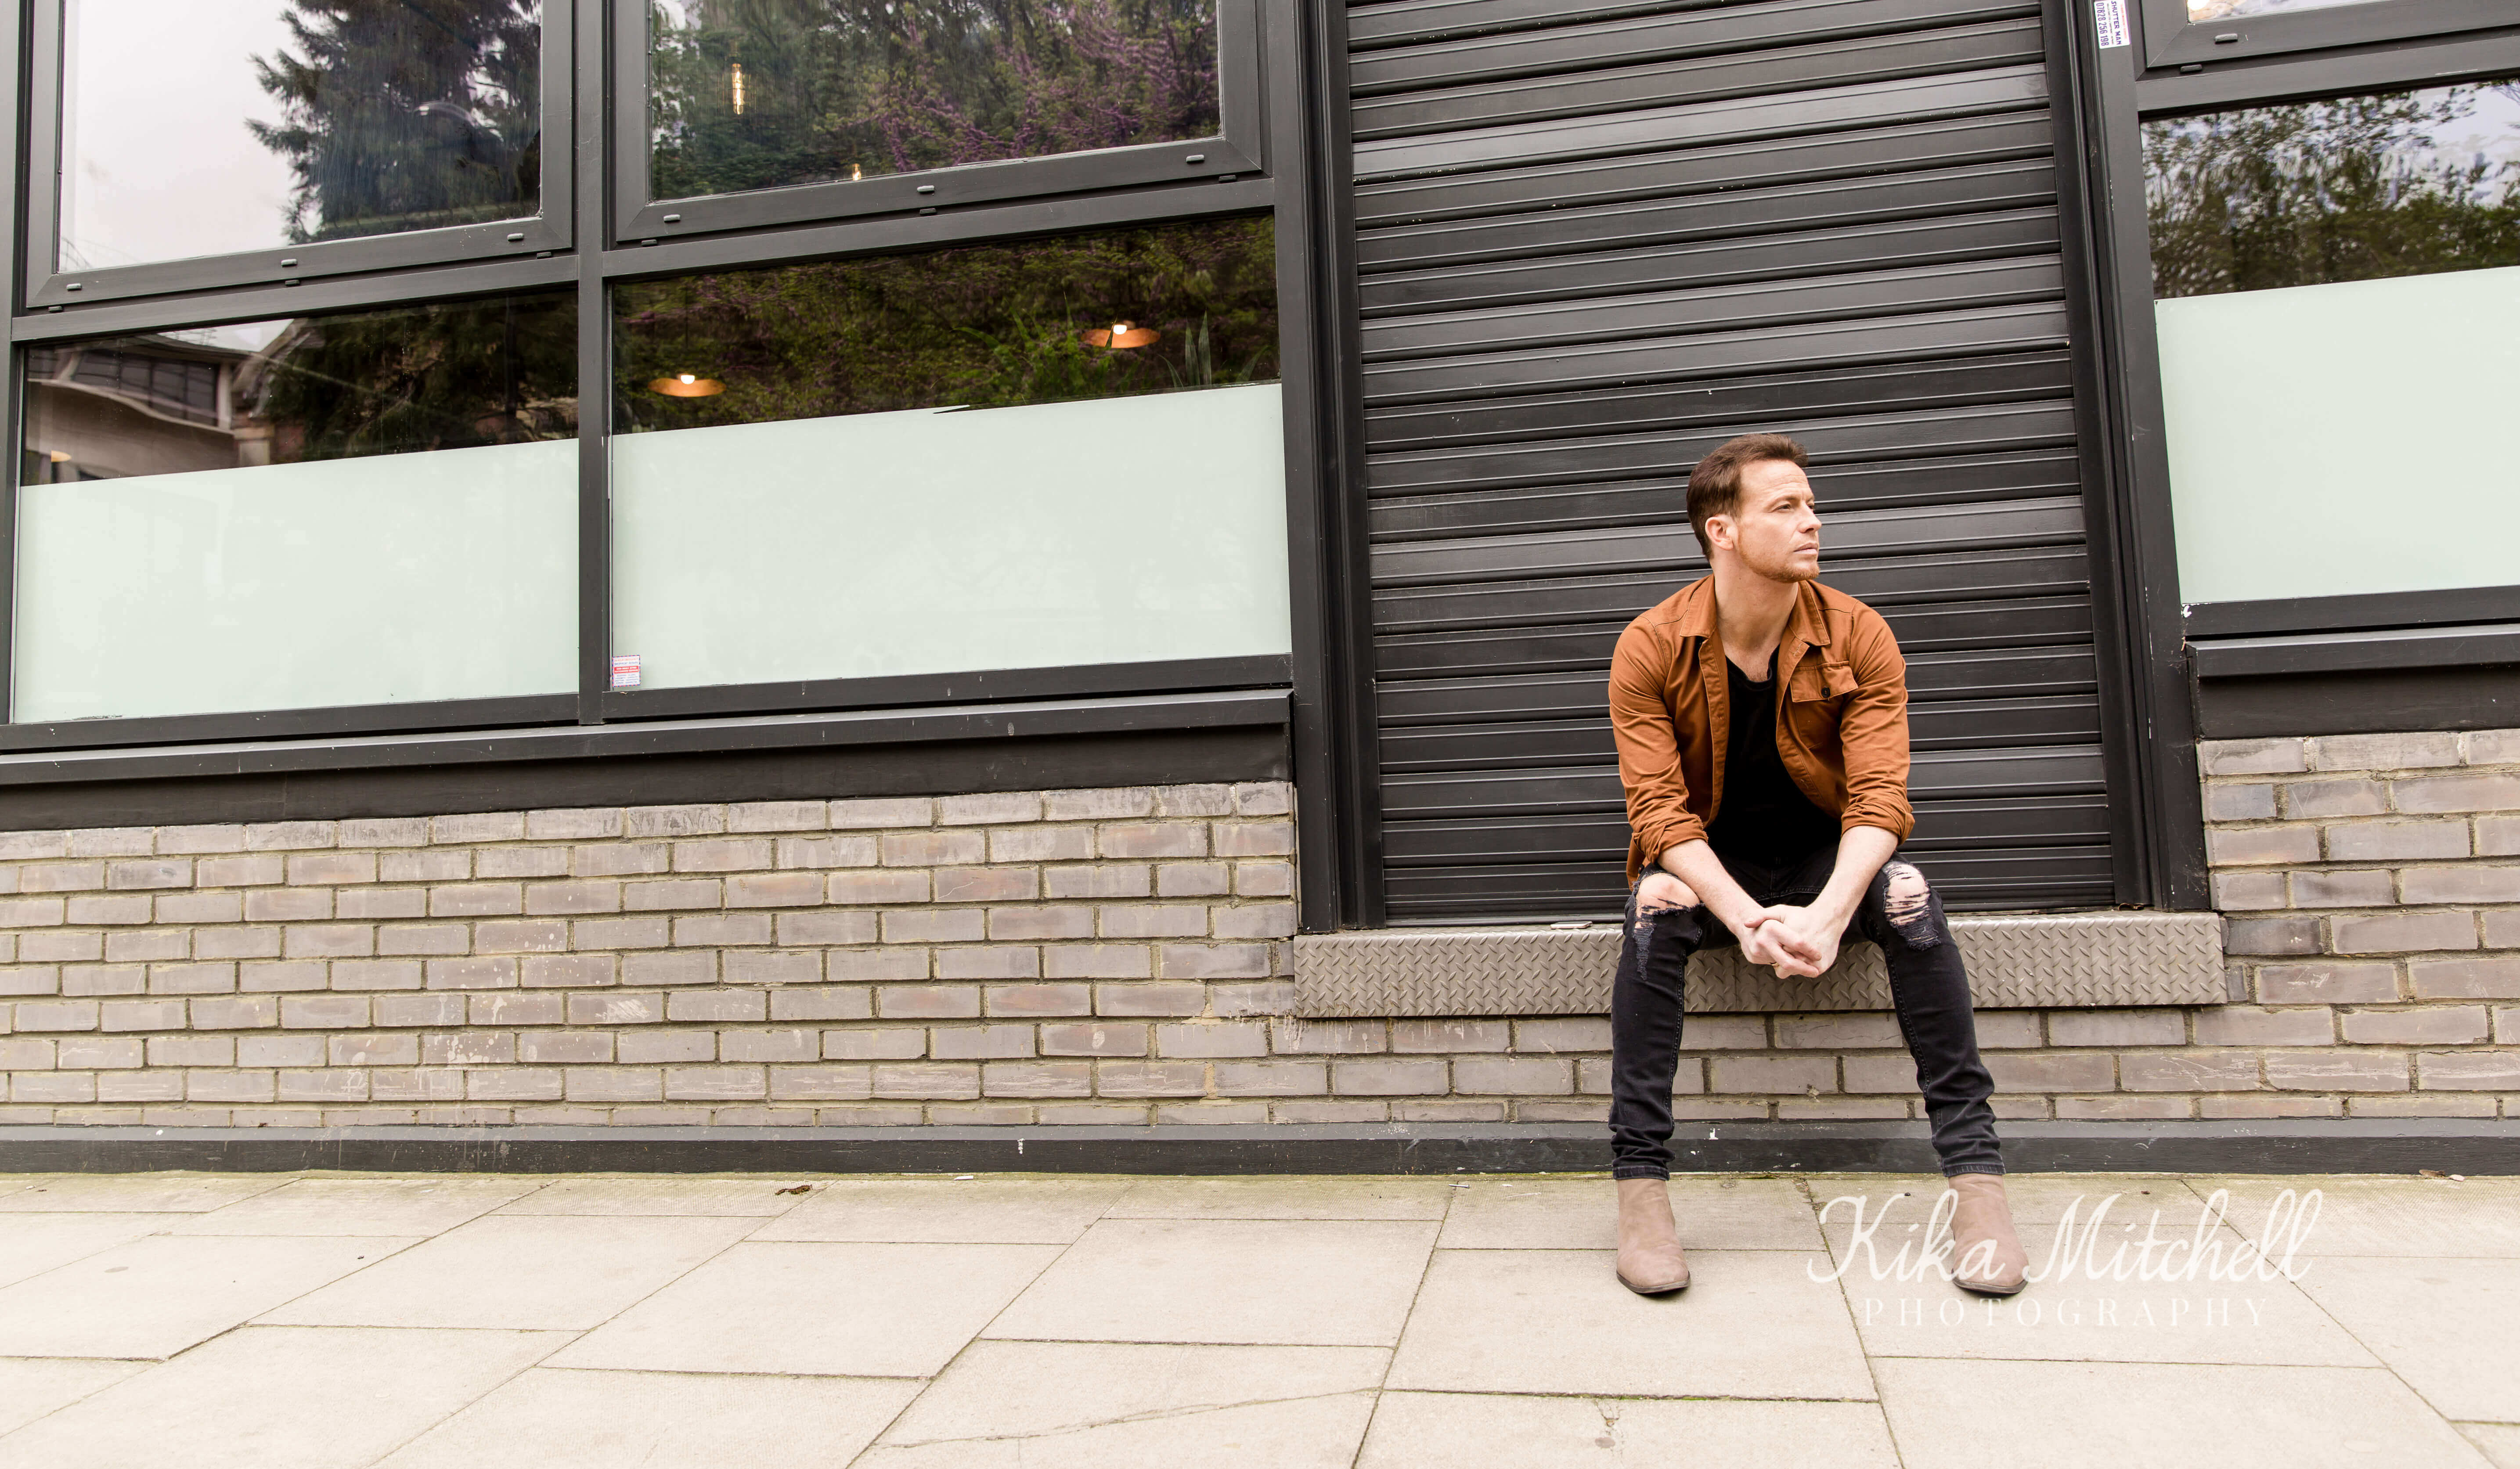 Joe Swash television presenter sat on wall on personal branding shoot by Kika Mitchell Photography Chelmsford Photographer